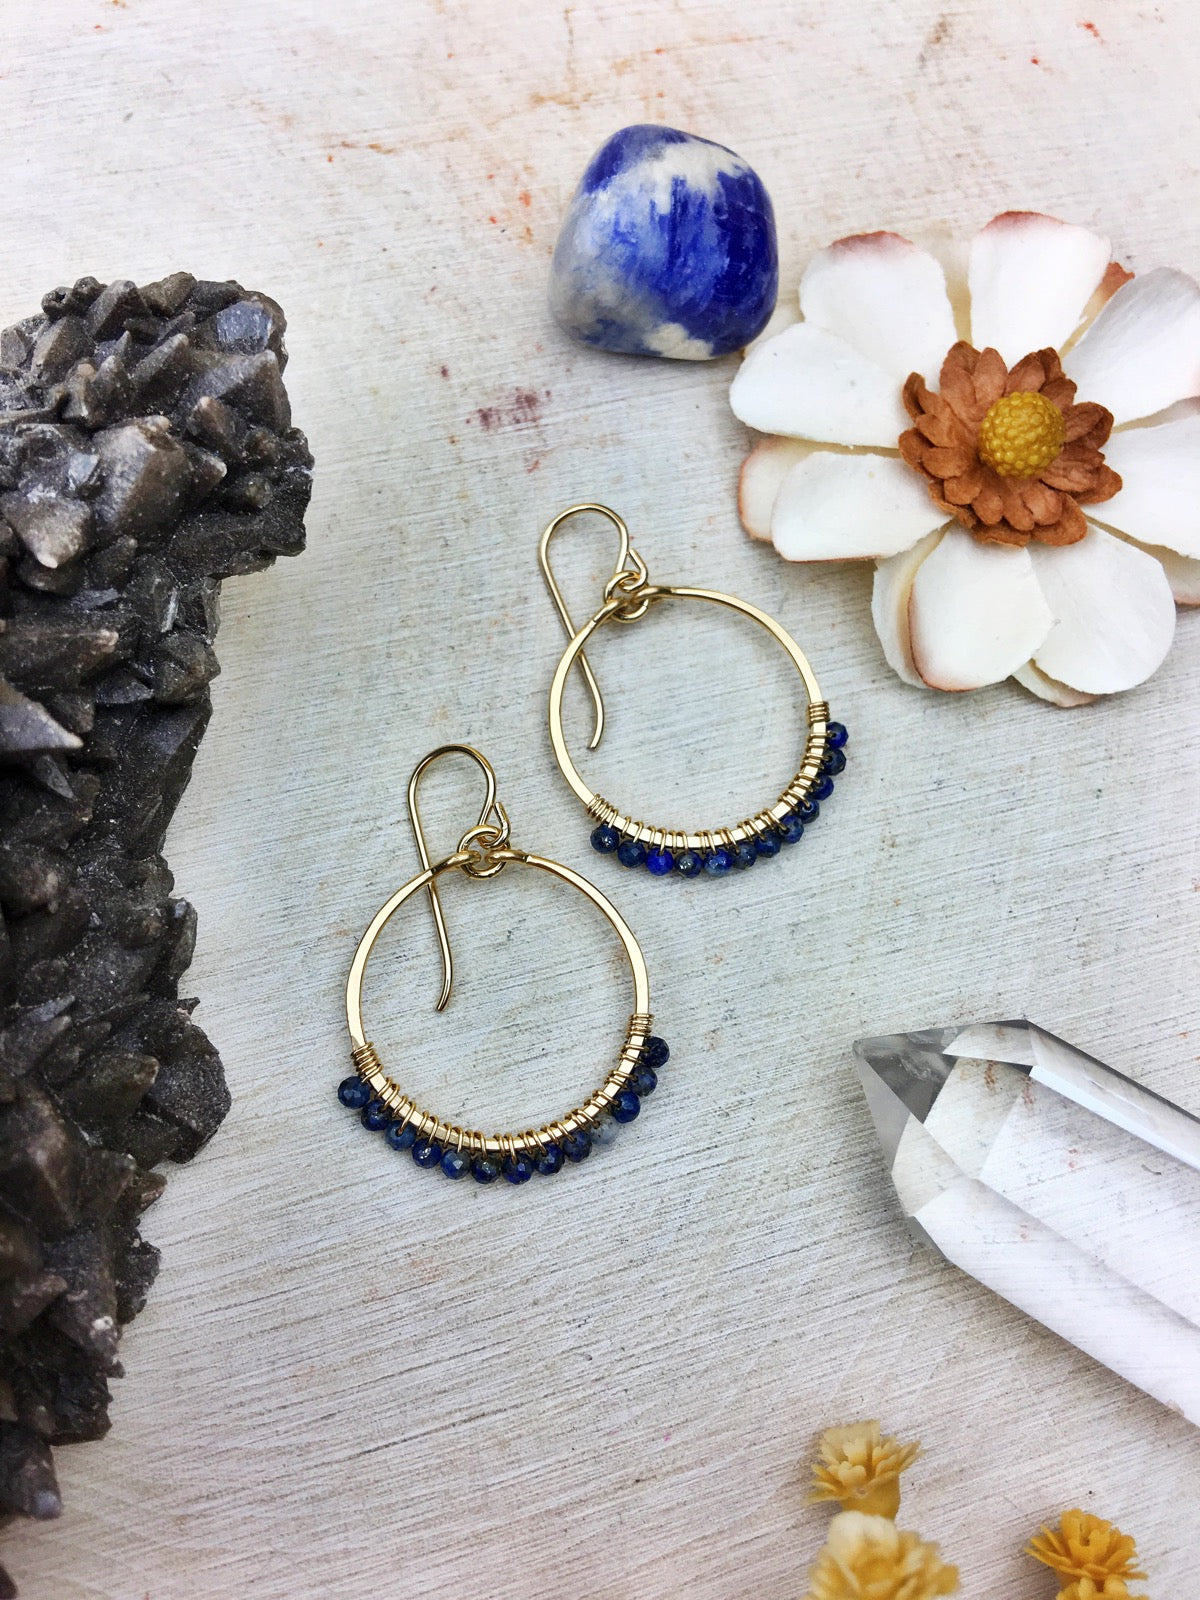 Ophelia's Hoop Earrings - Lapis Lazuli Gemstones 14k Gold Filled